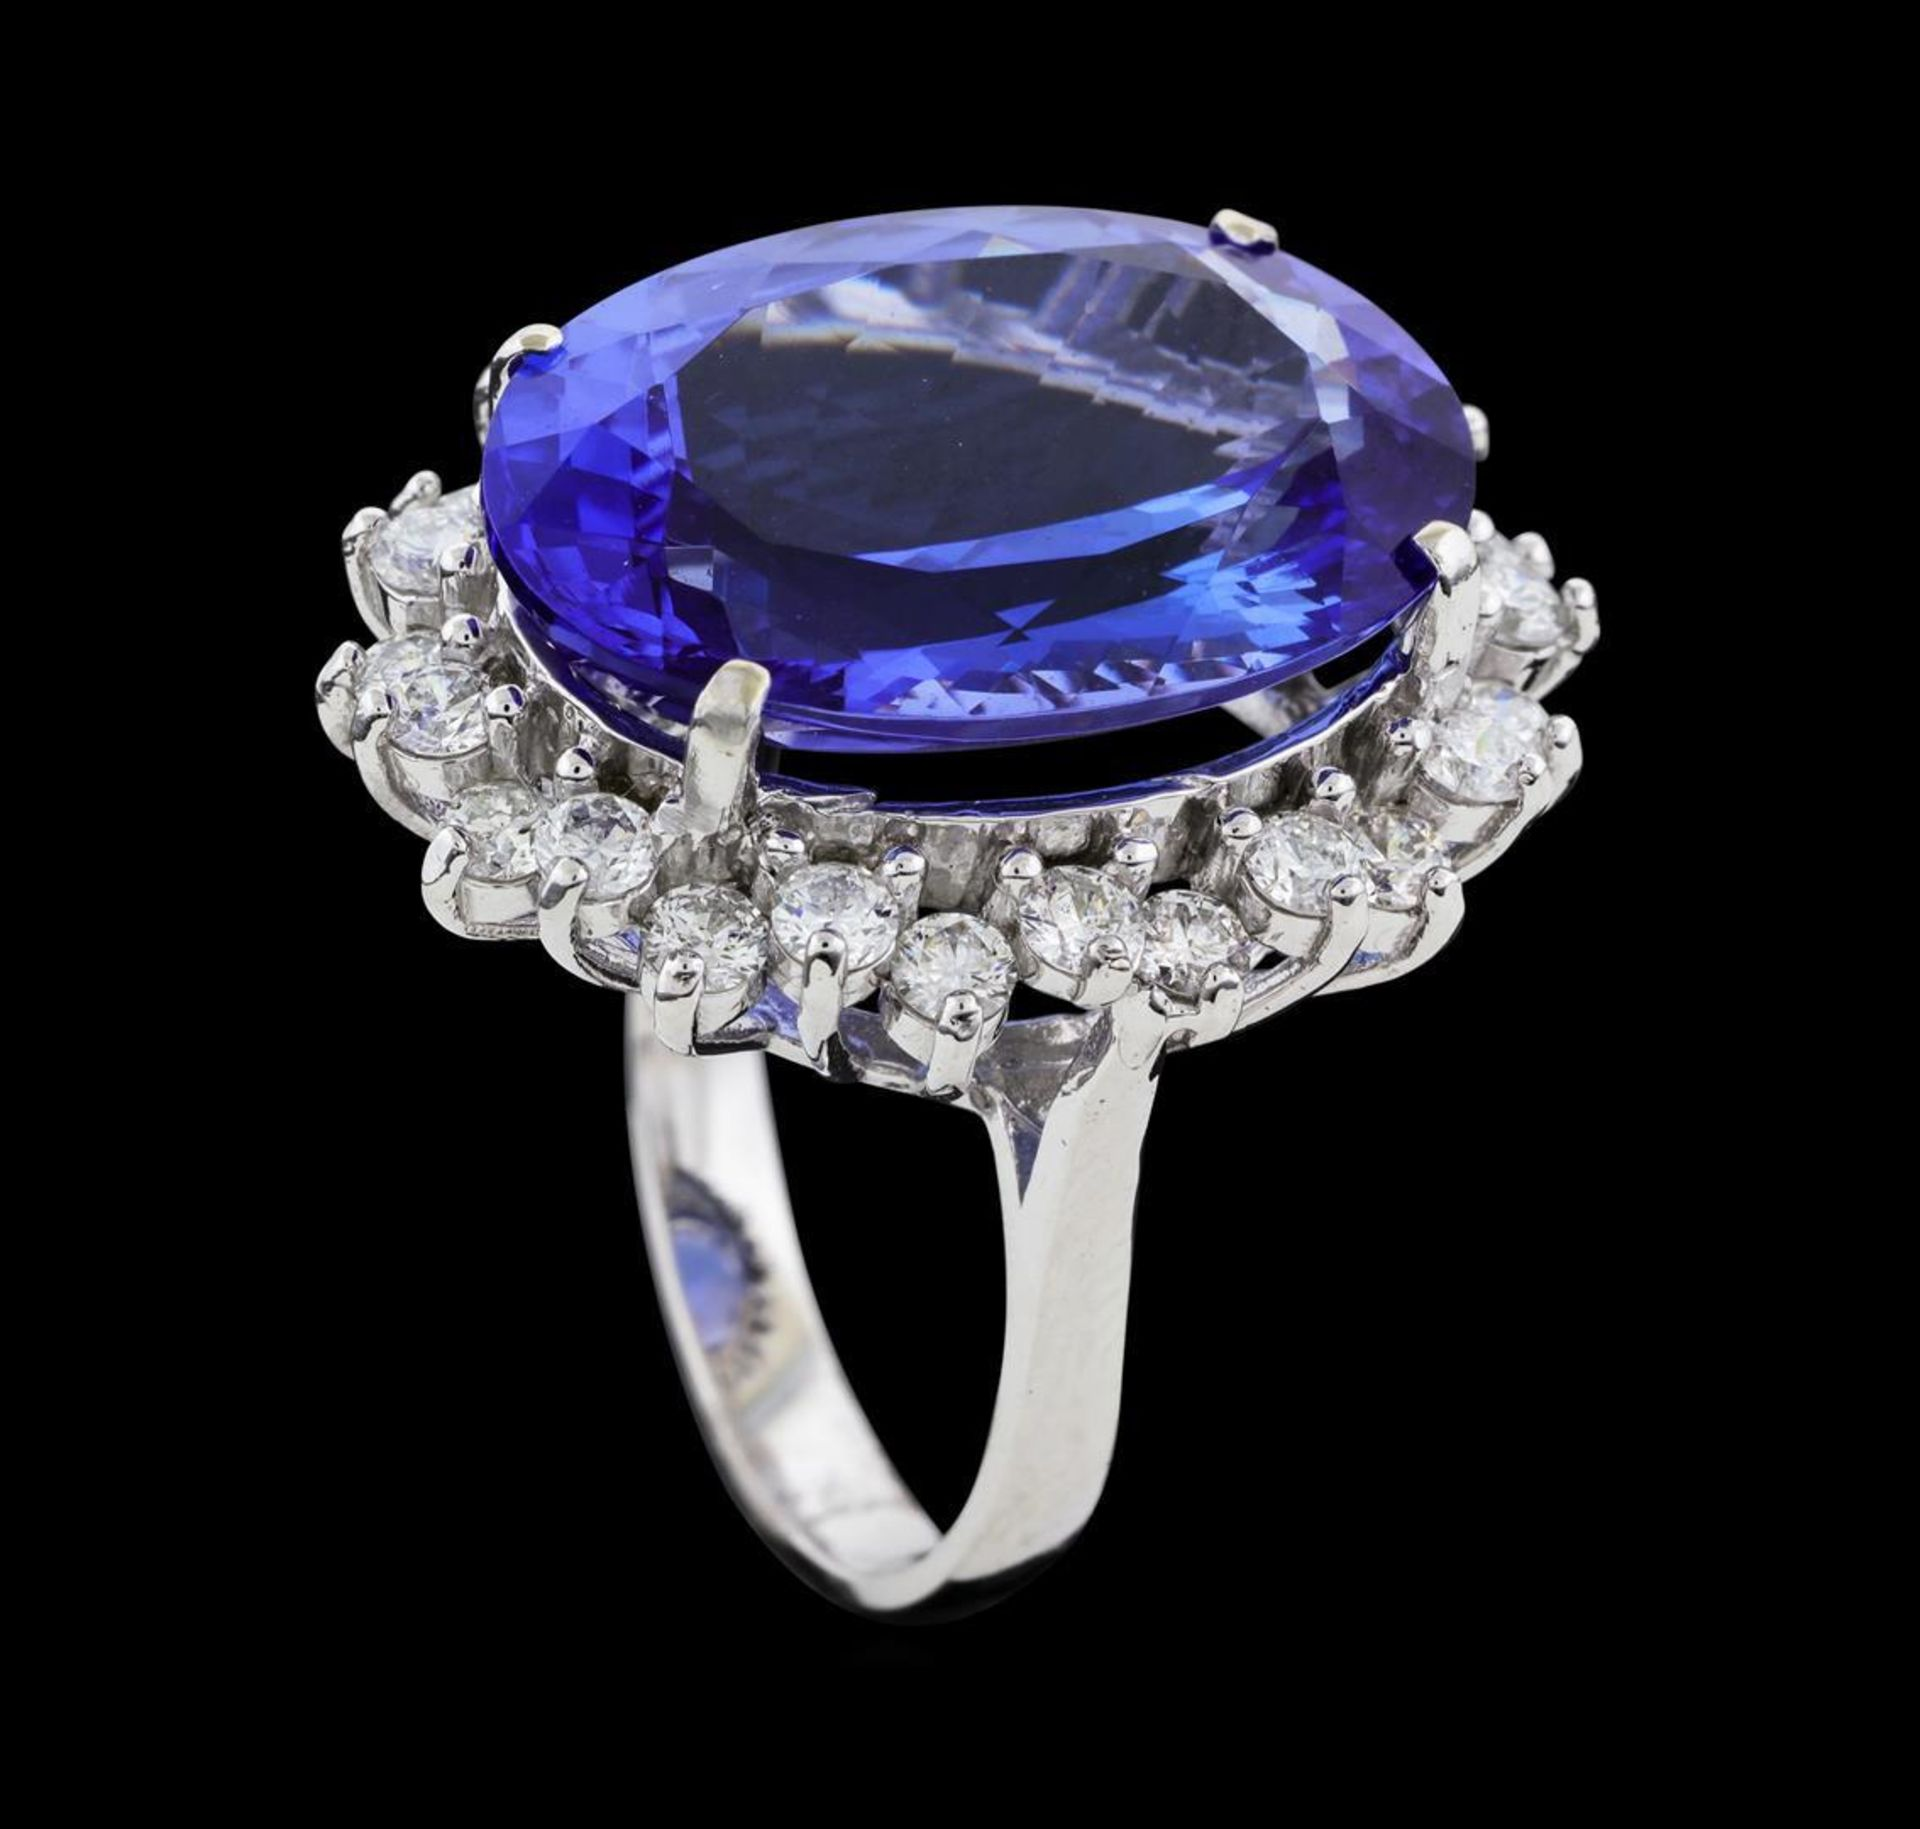 16.10 ctw Tanzanite and Diamond Ring - 14KT White Gold - Image 4 of 5